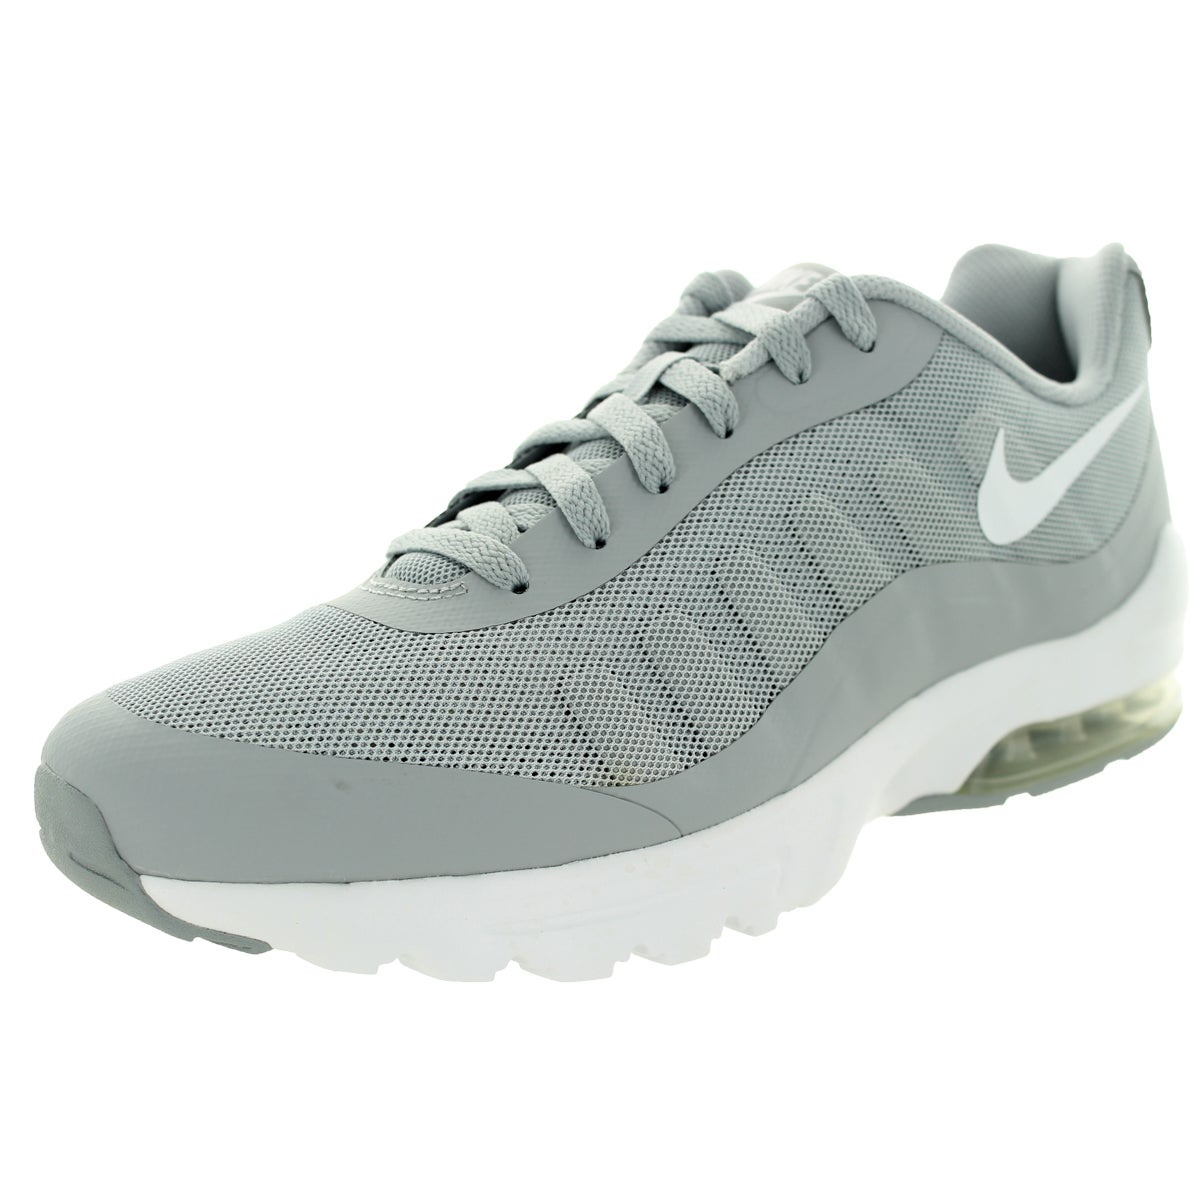 21fcbfbea5 ... aliexpress shop nike mens air max invigor wolf grey white running shoe  free shipping today overstock ...